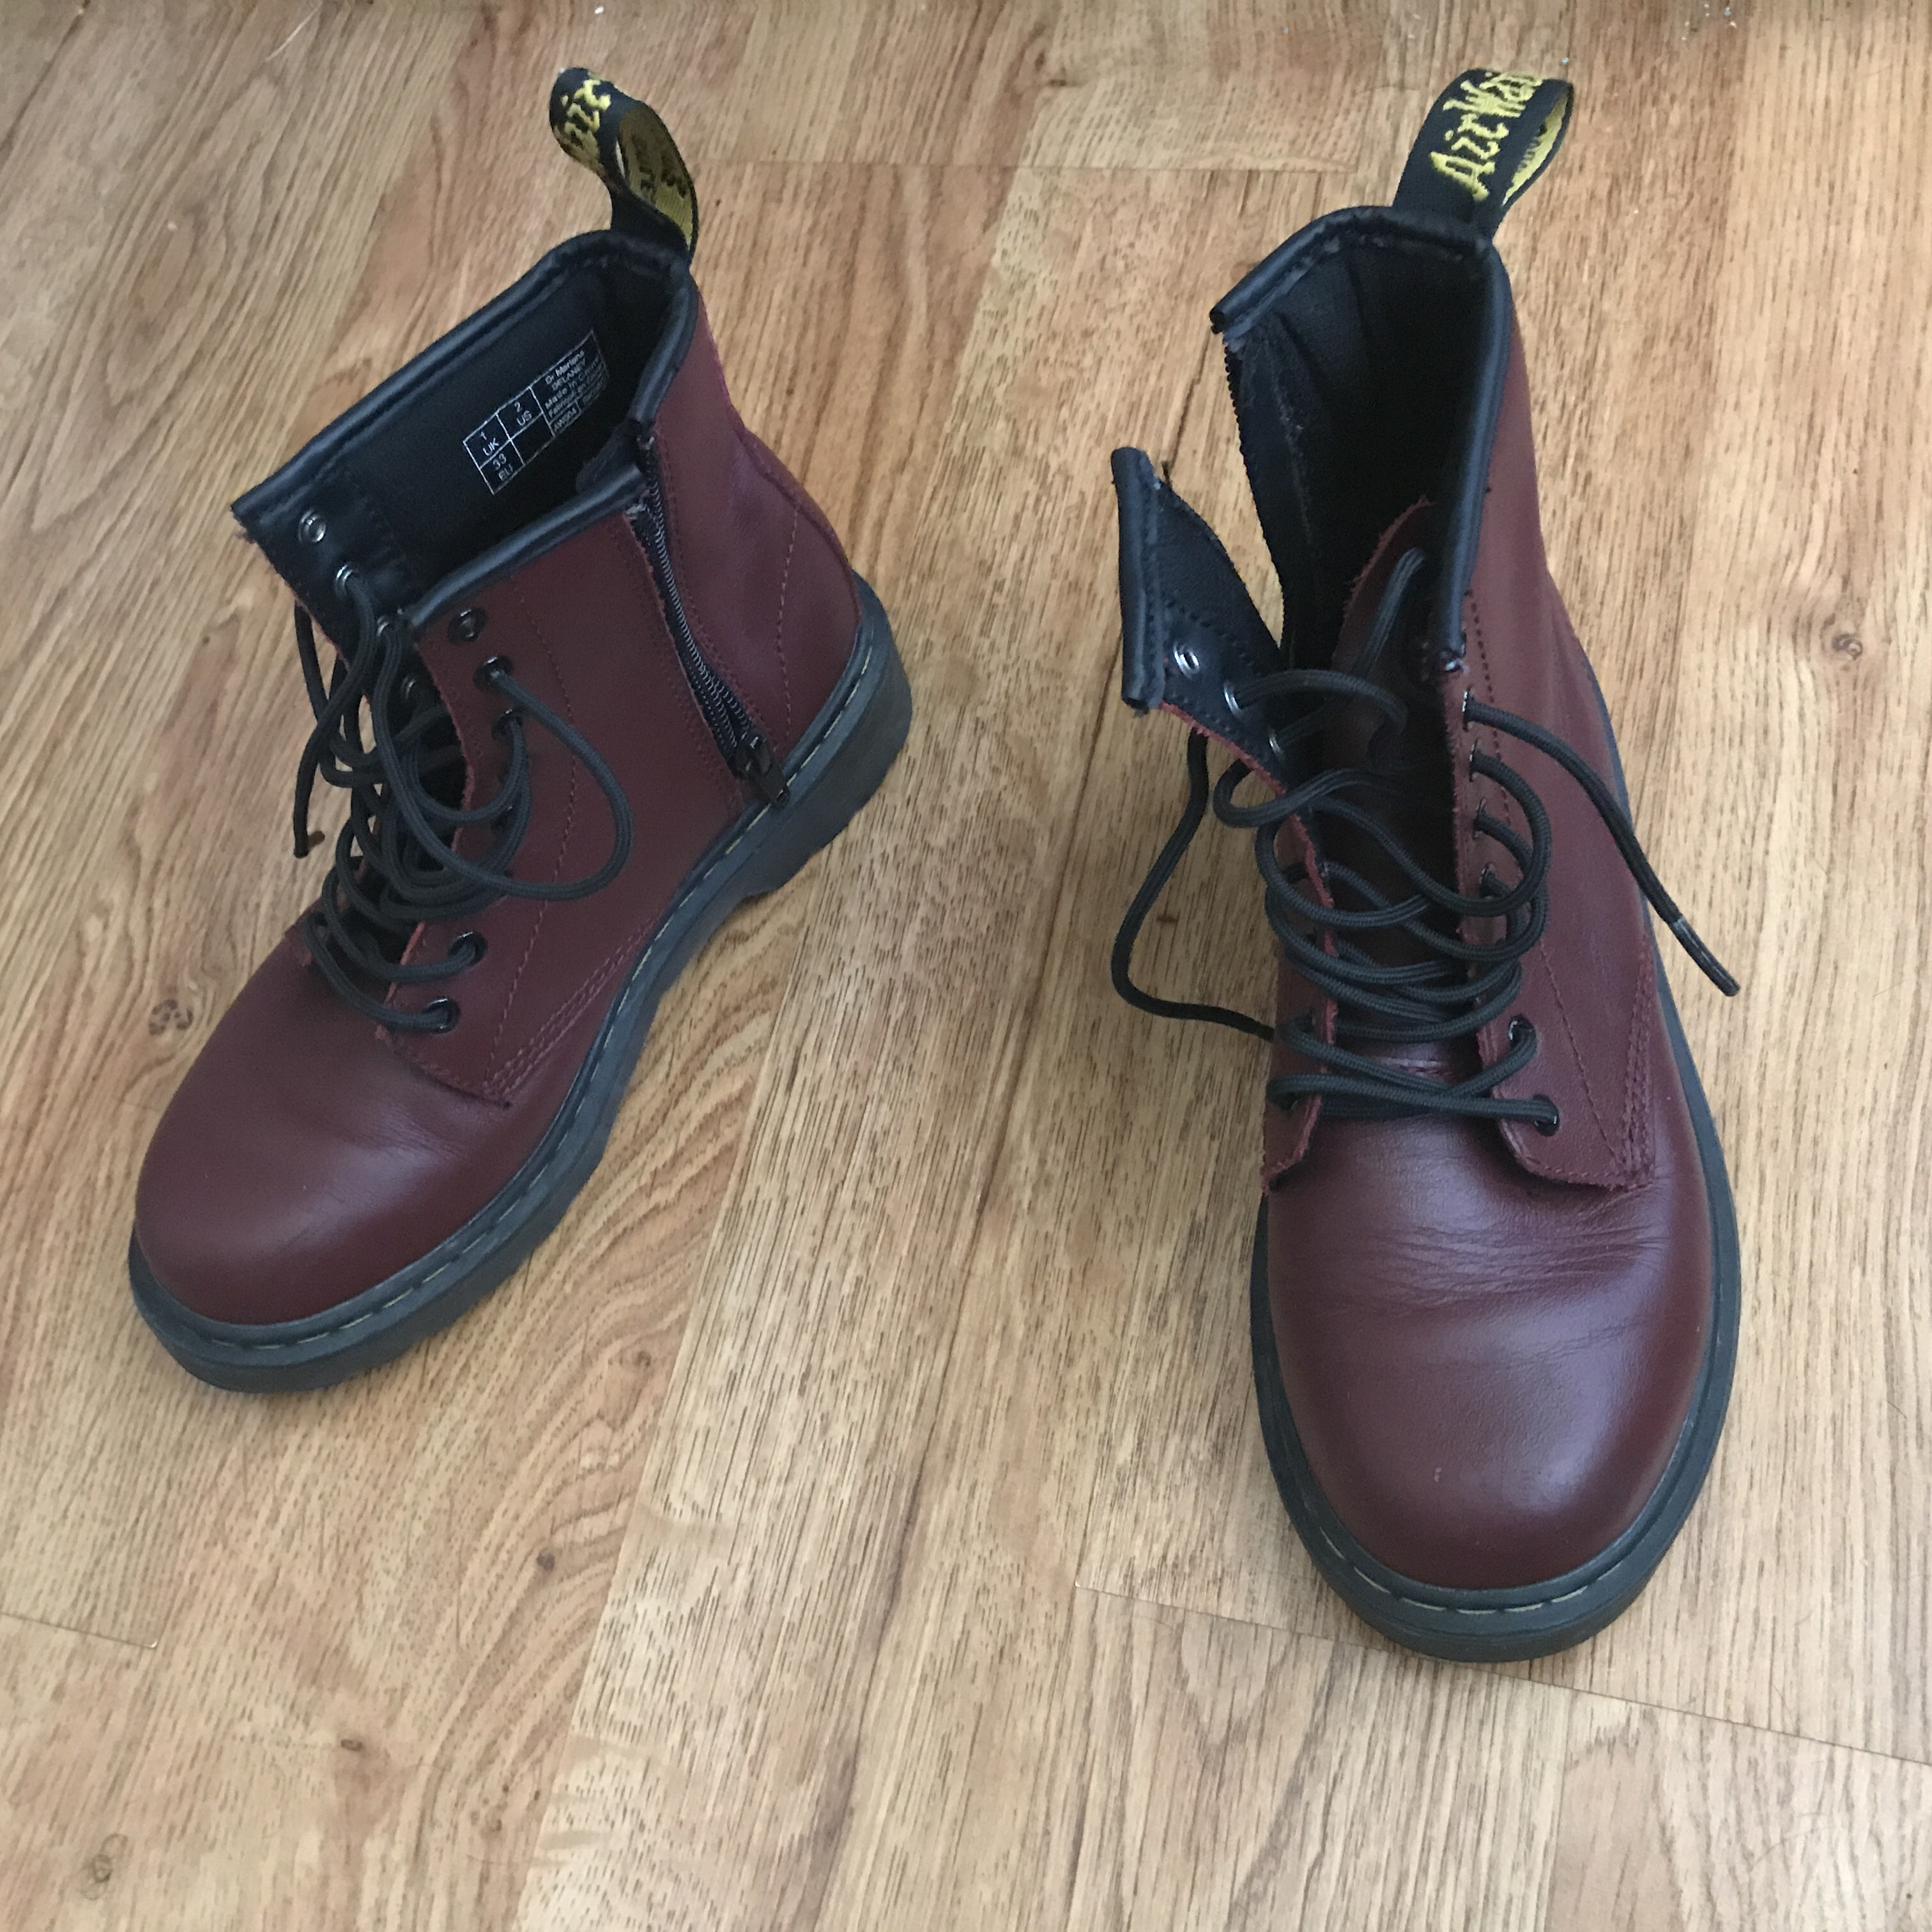 doc martens 1460 youth Dr Martens Boots